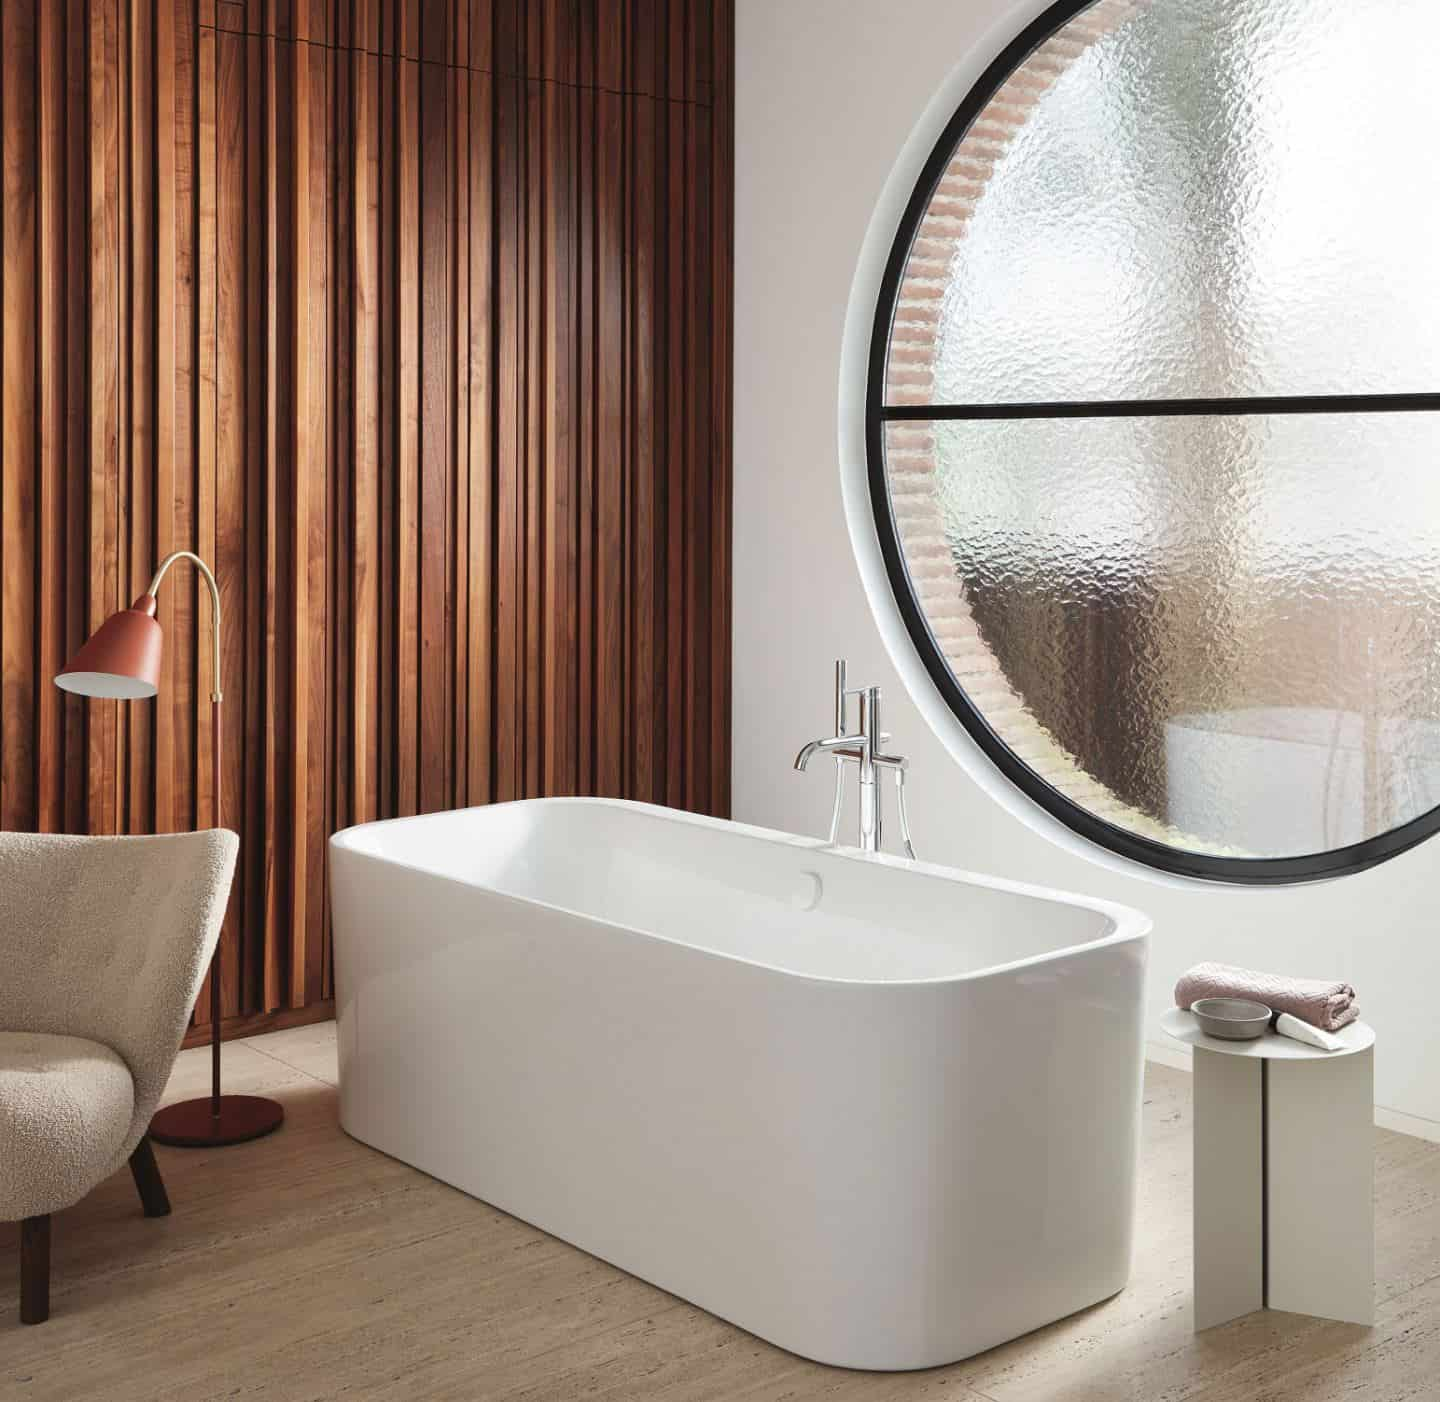 Duravit Happy D.2 Plus C-Shaped bathroom range. Freestanding bathtub in front of a large circular window.